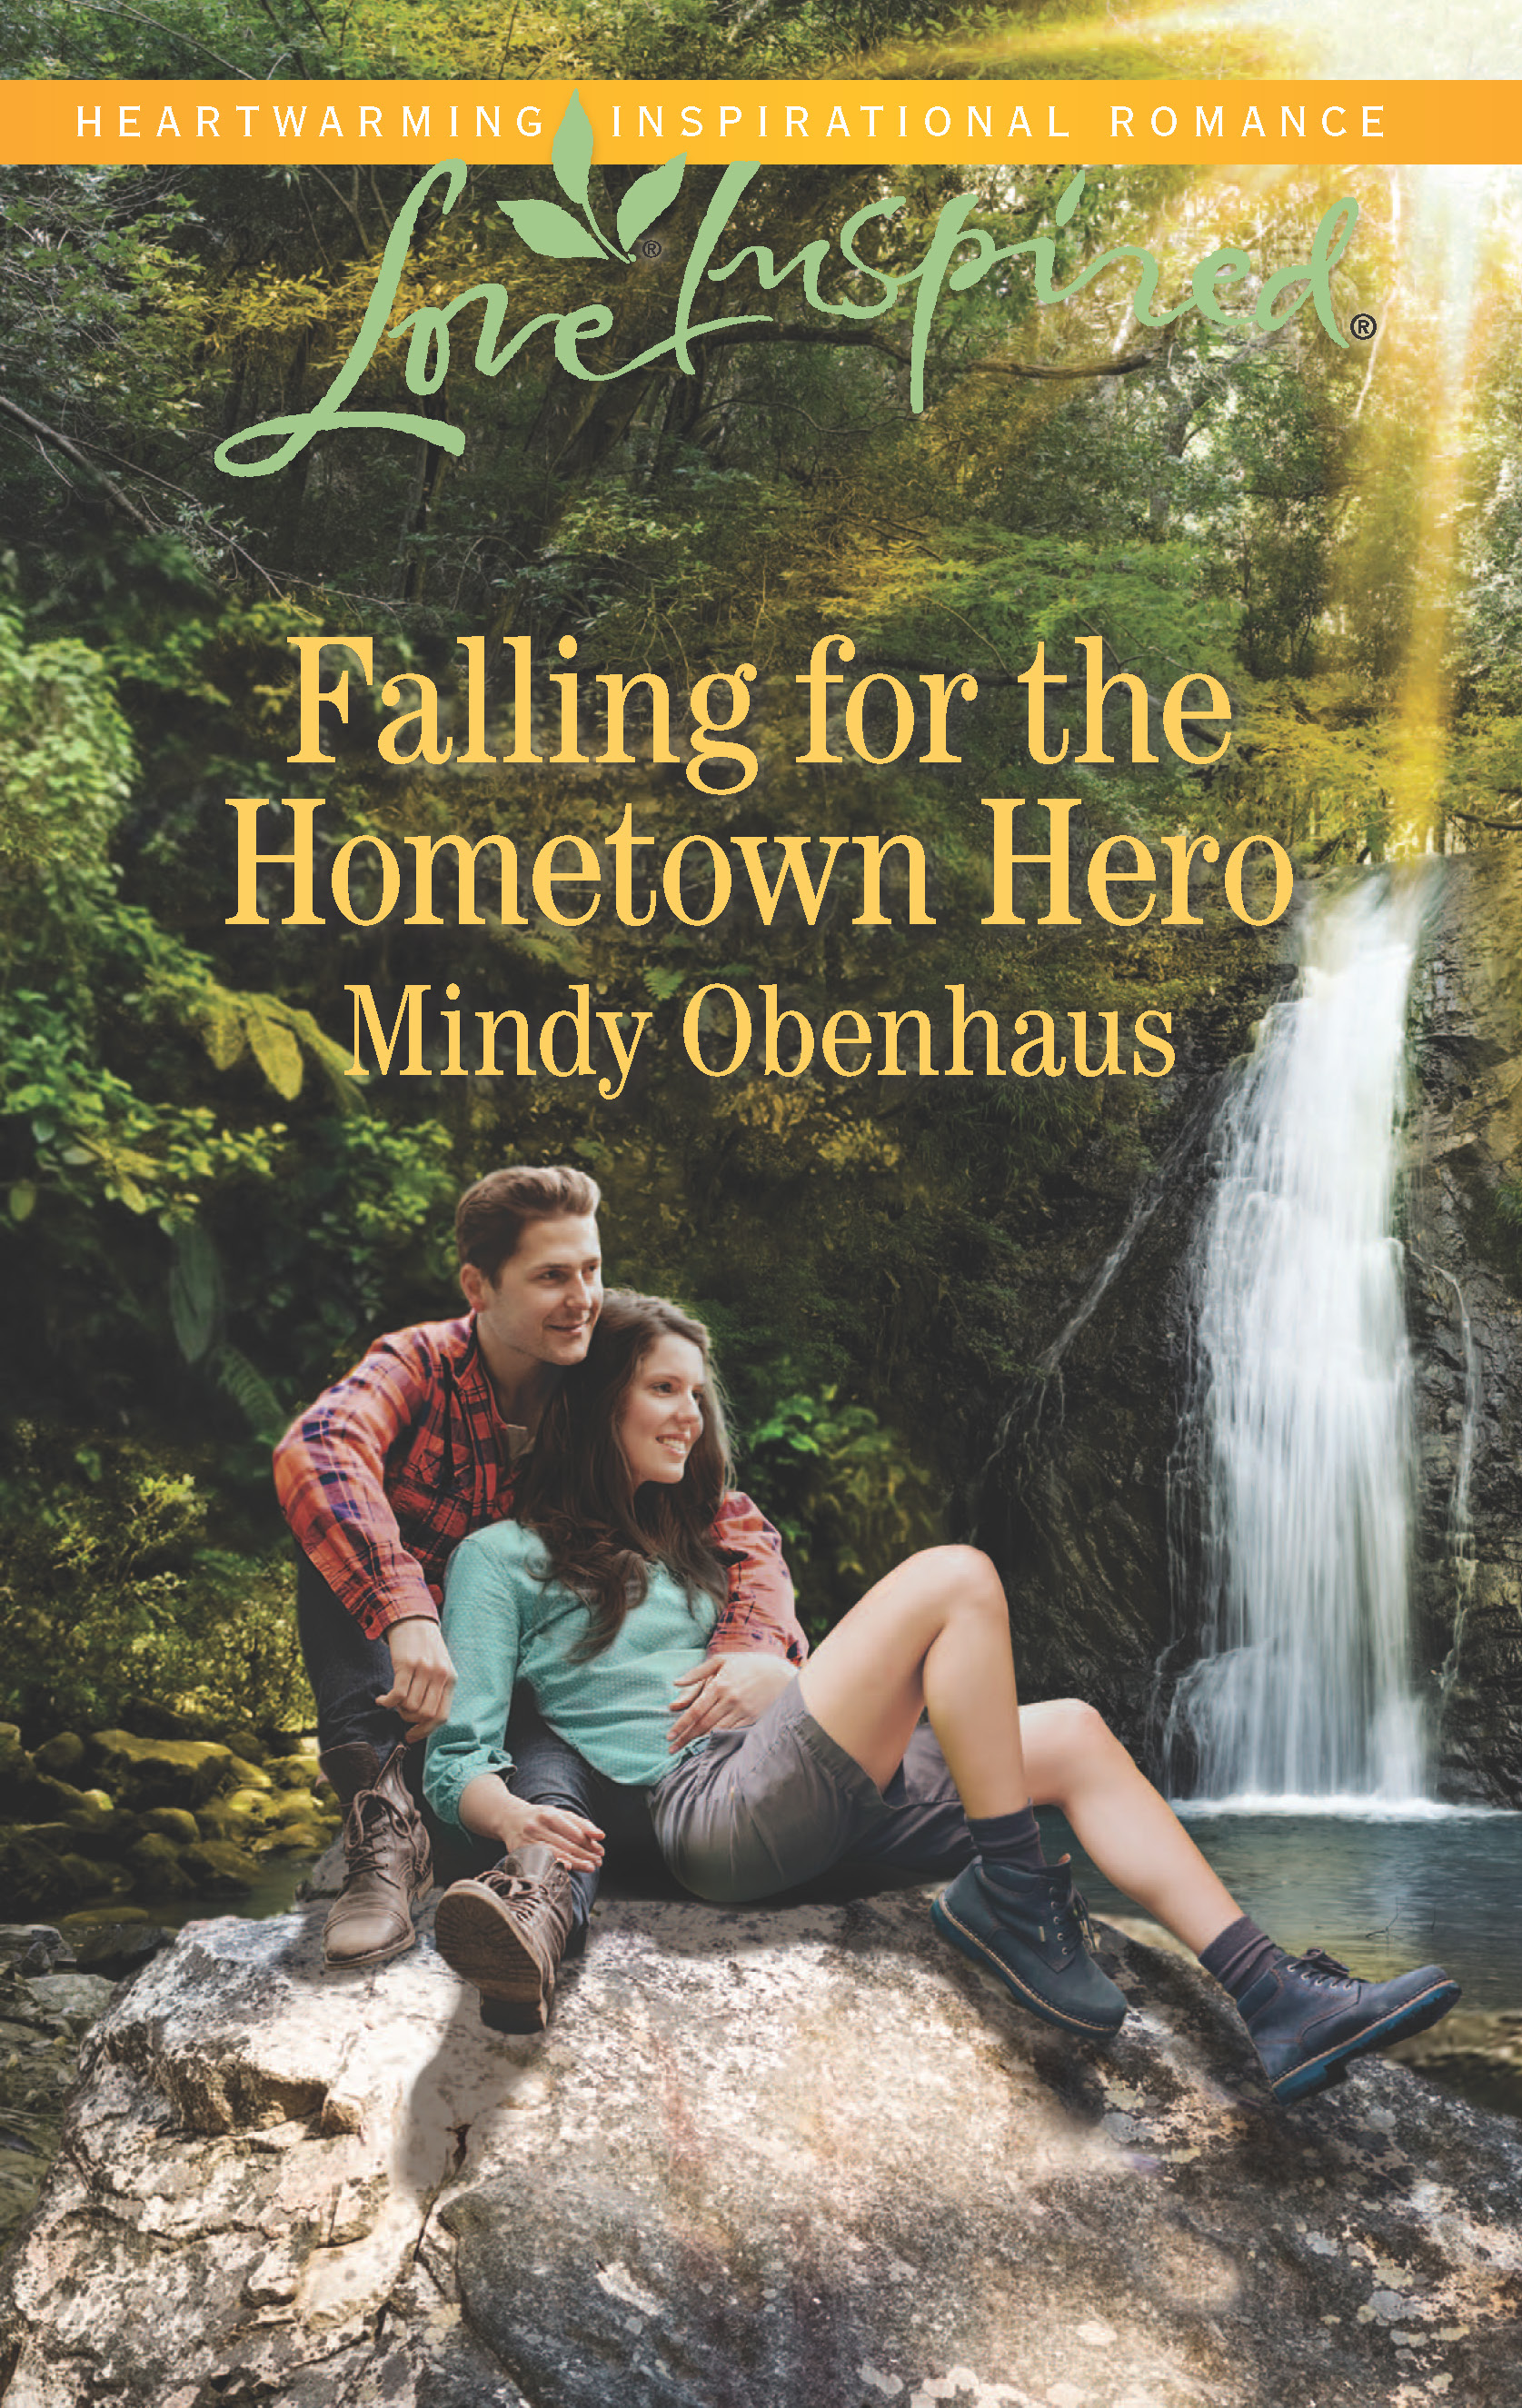 The Inside Scoop With Mindy Obenhaus Plus Giveaway!